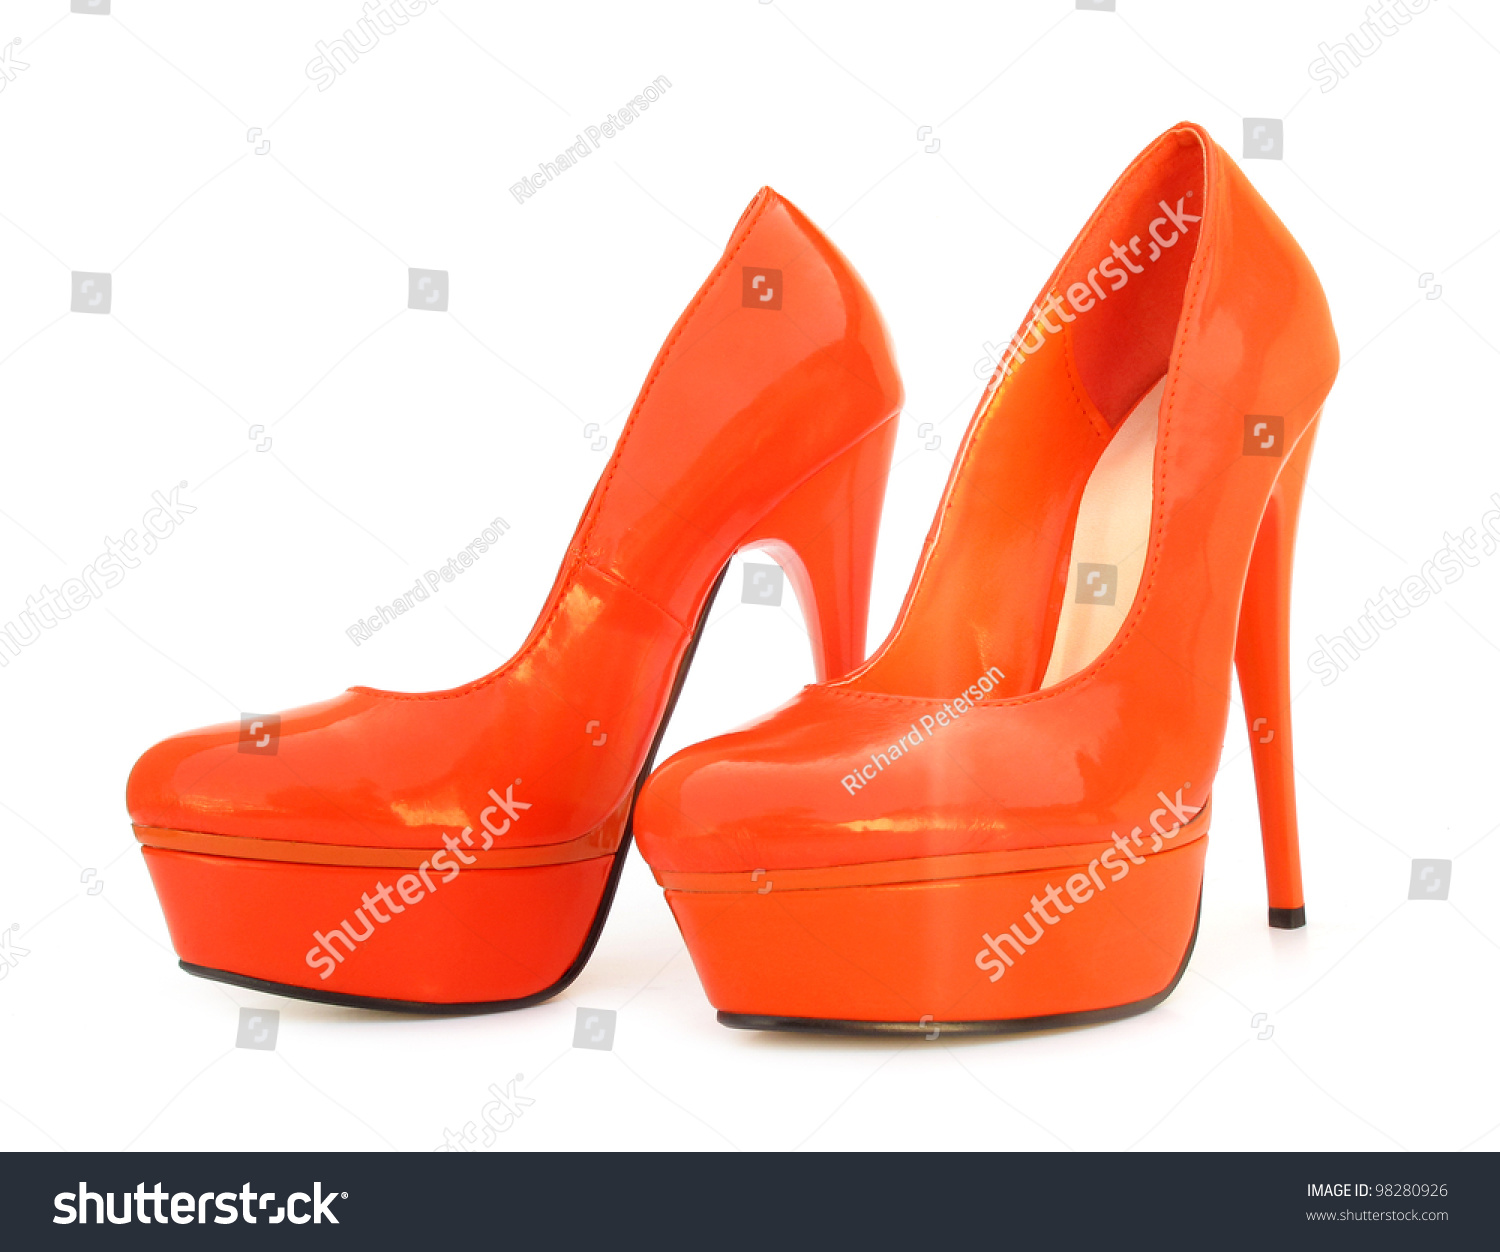 Orange High Heels Pump Shoes Stock Photo 98280926 - Shutterstock